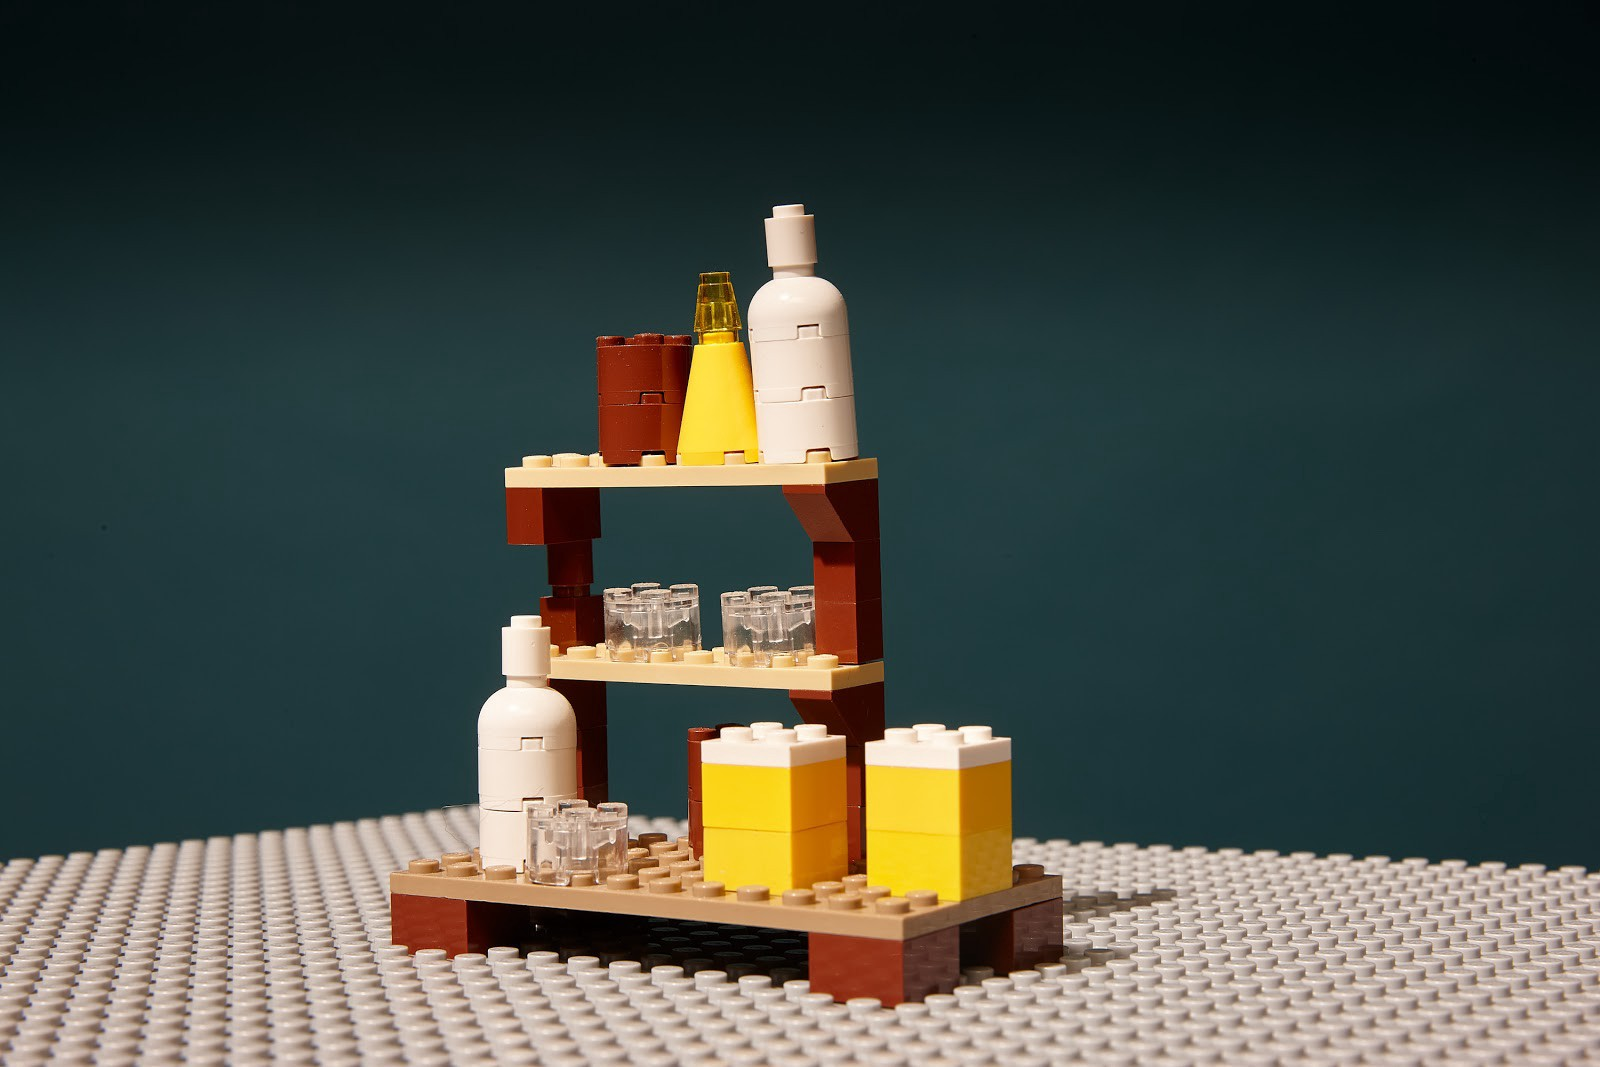 A bar made out of Legos